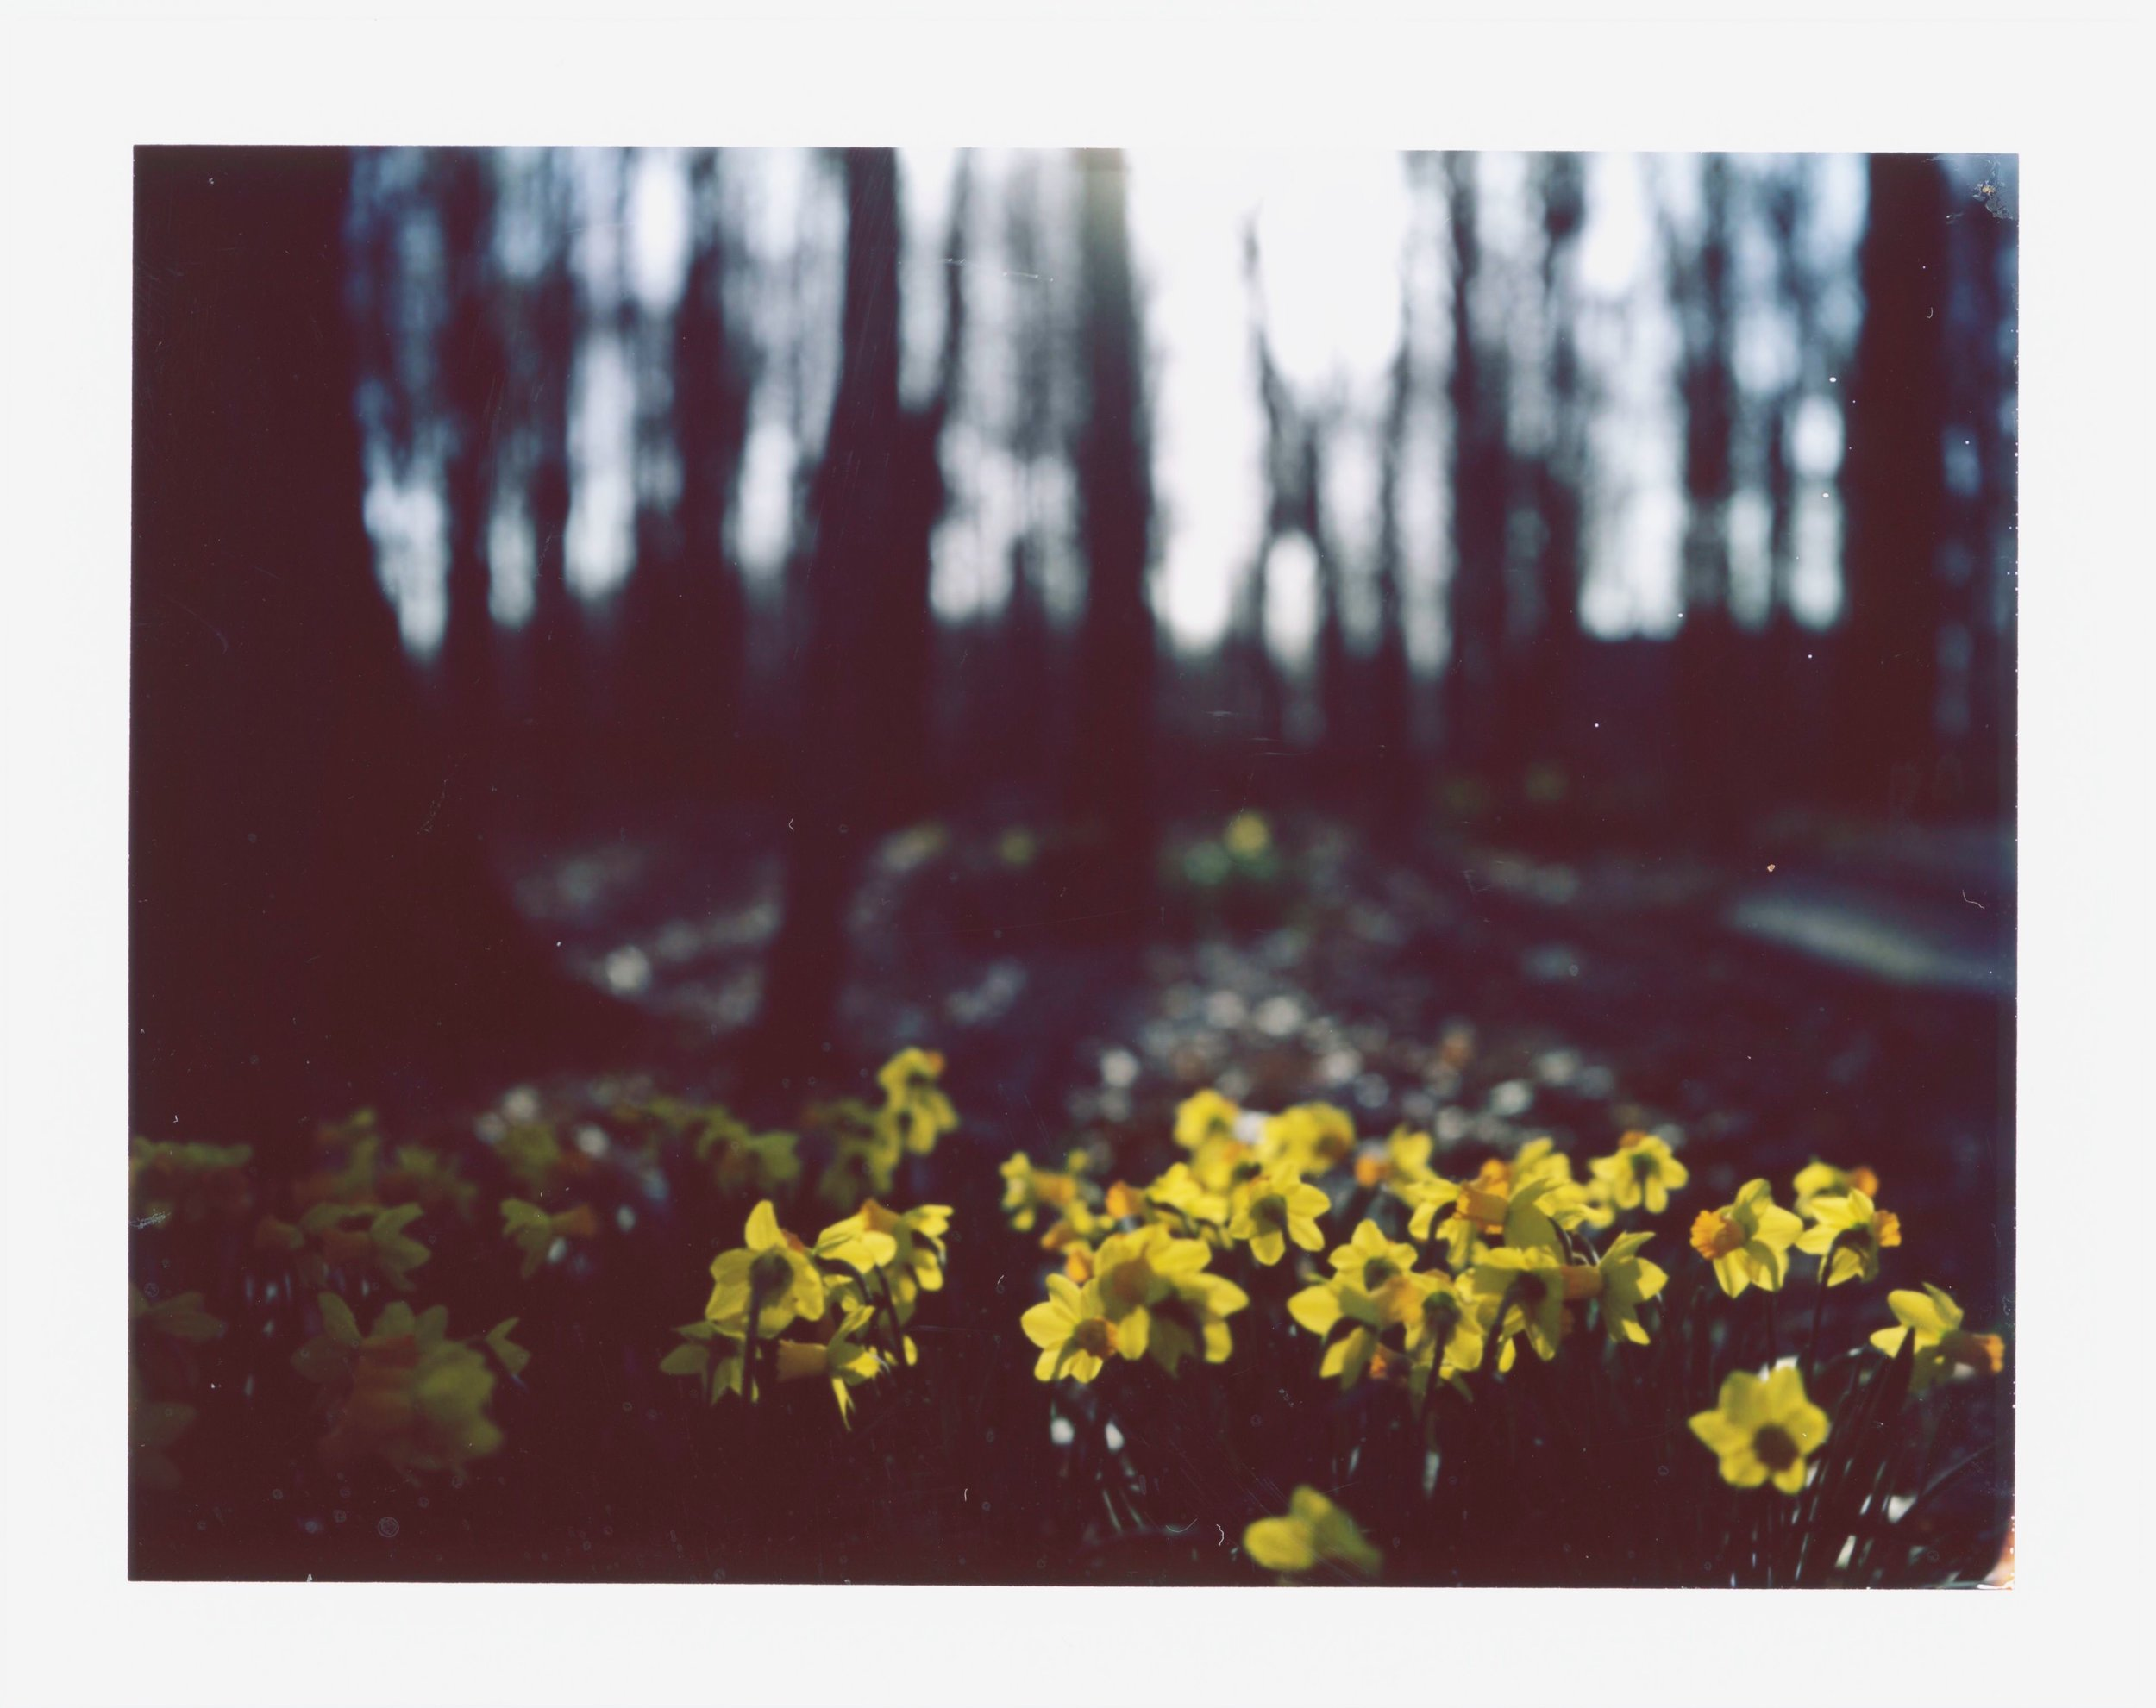 spring beginnings | Land camera | FP100c | tracey bos